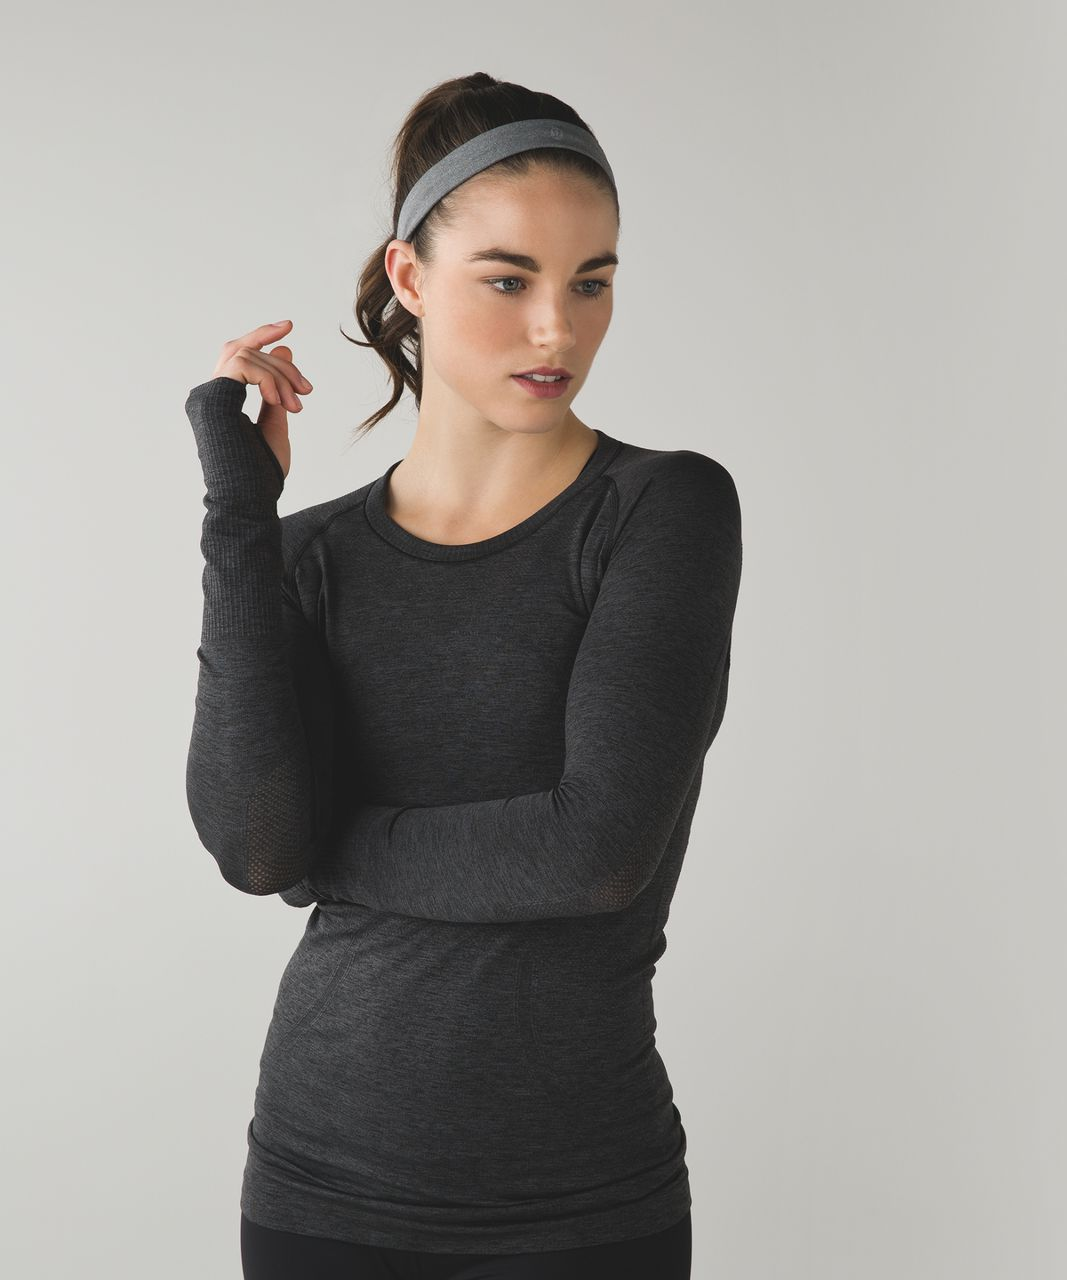 Lululemon Cardio Cross Trainer Headband - Heathered Slate